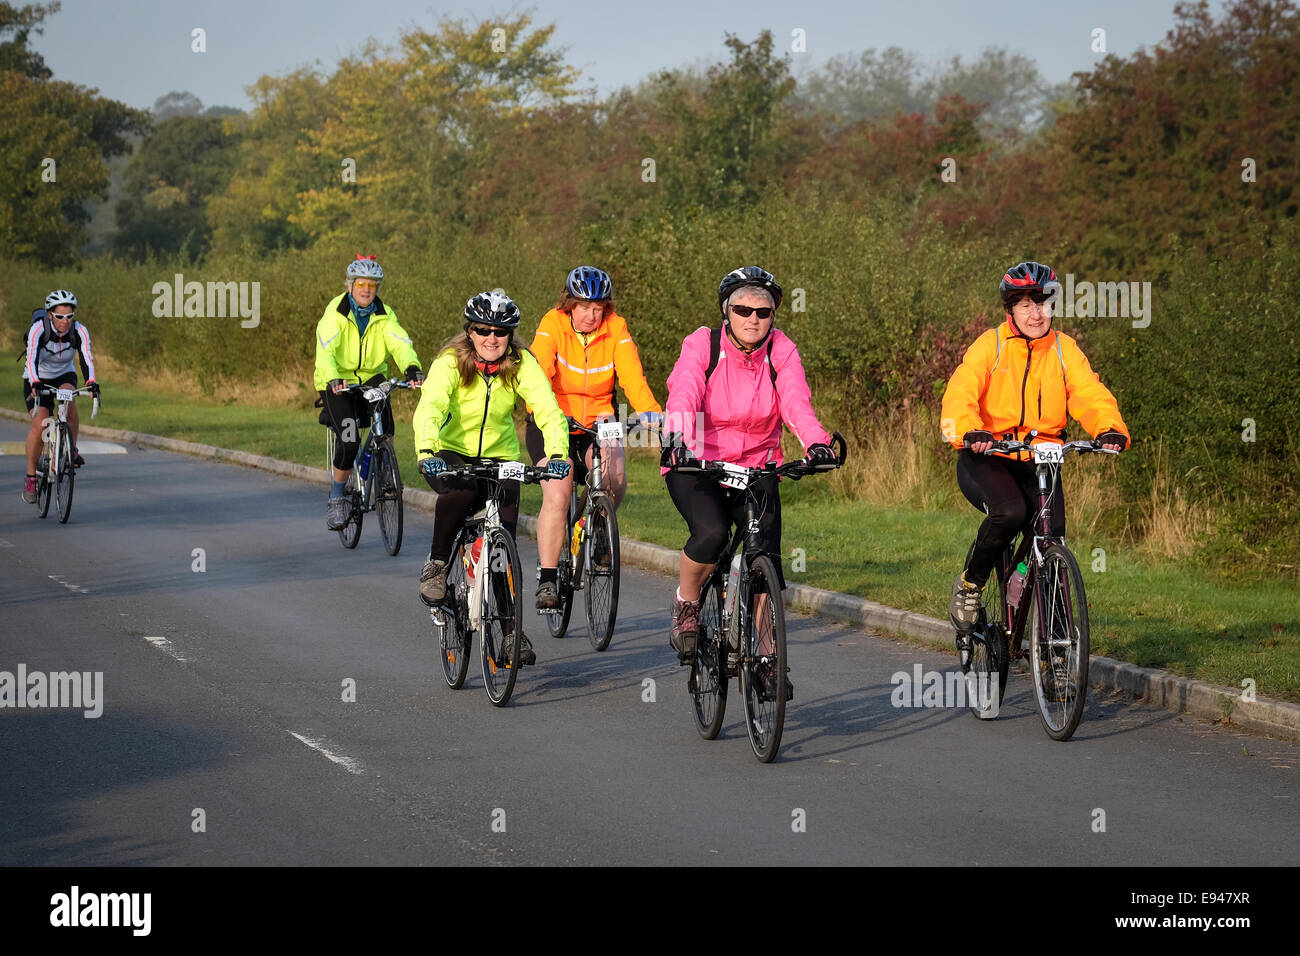 Group of ladies on an organised cycling event - Stock Image